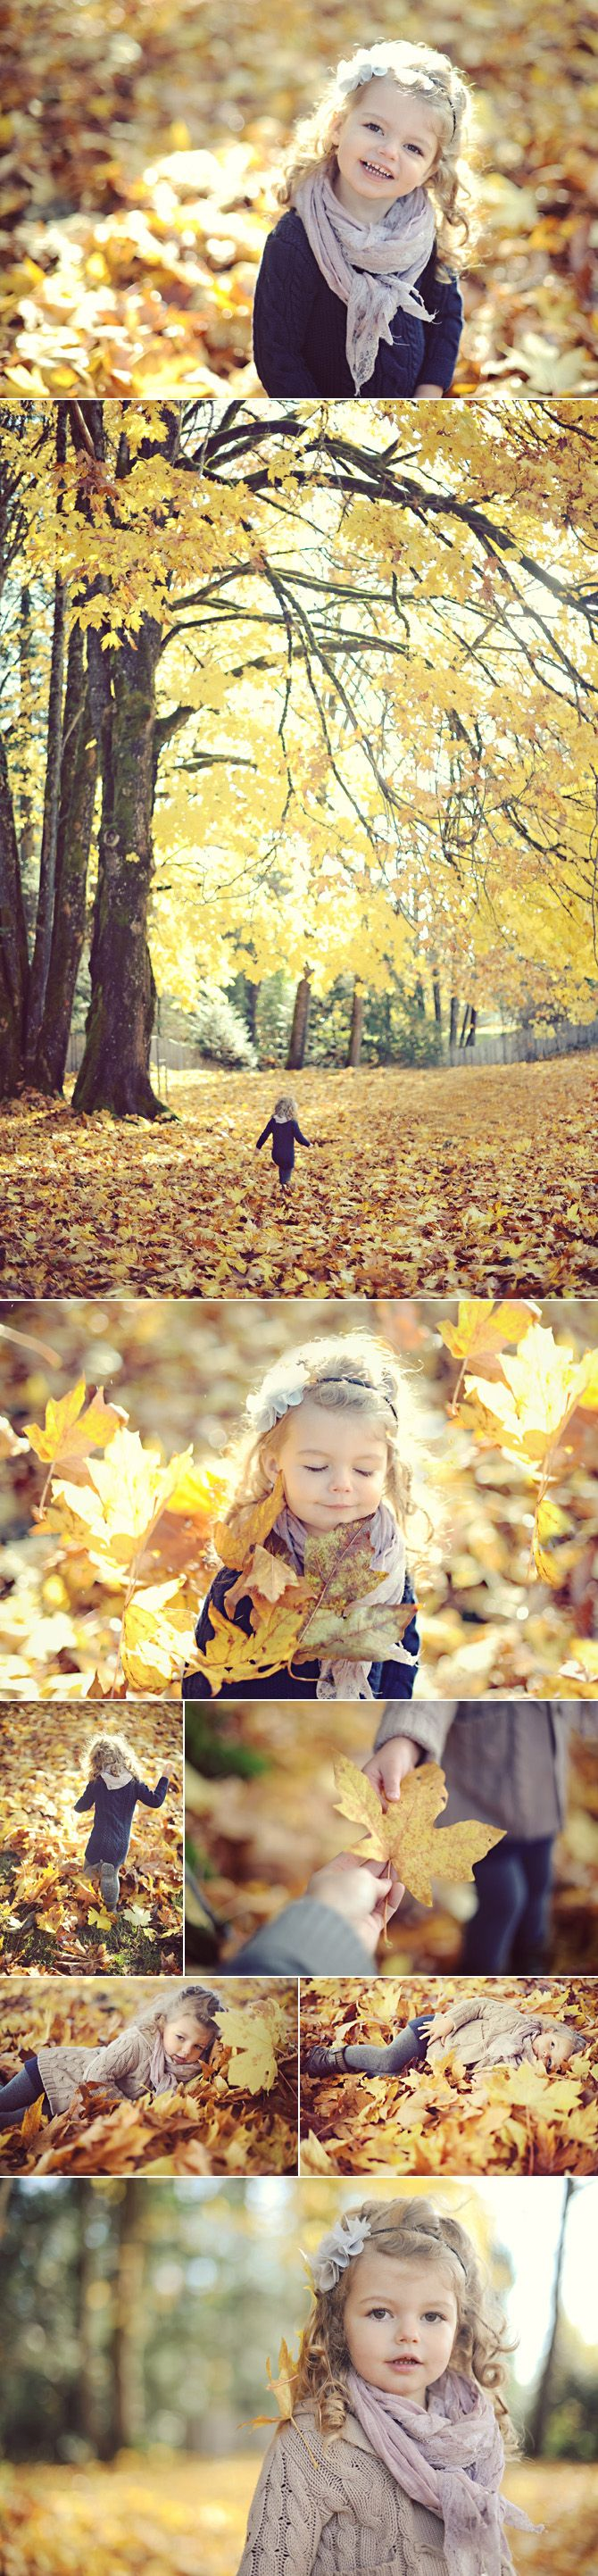 Documentary Inspired   Lifestyle   Real Moments   Raw Emotion   Candid Photography   Child Fall Leave Session